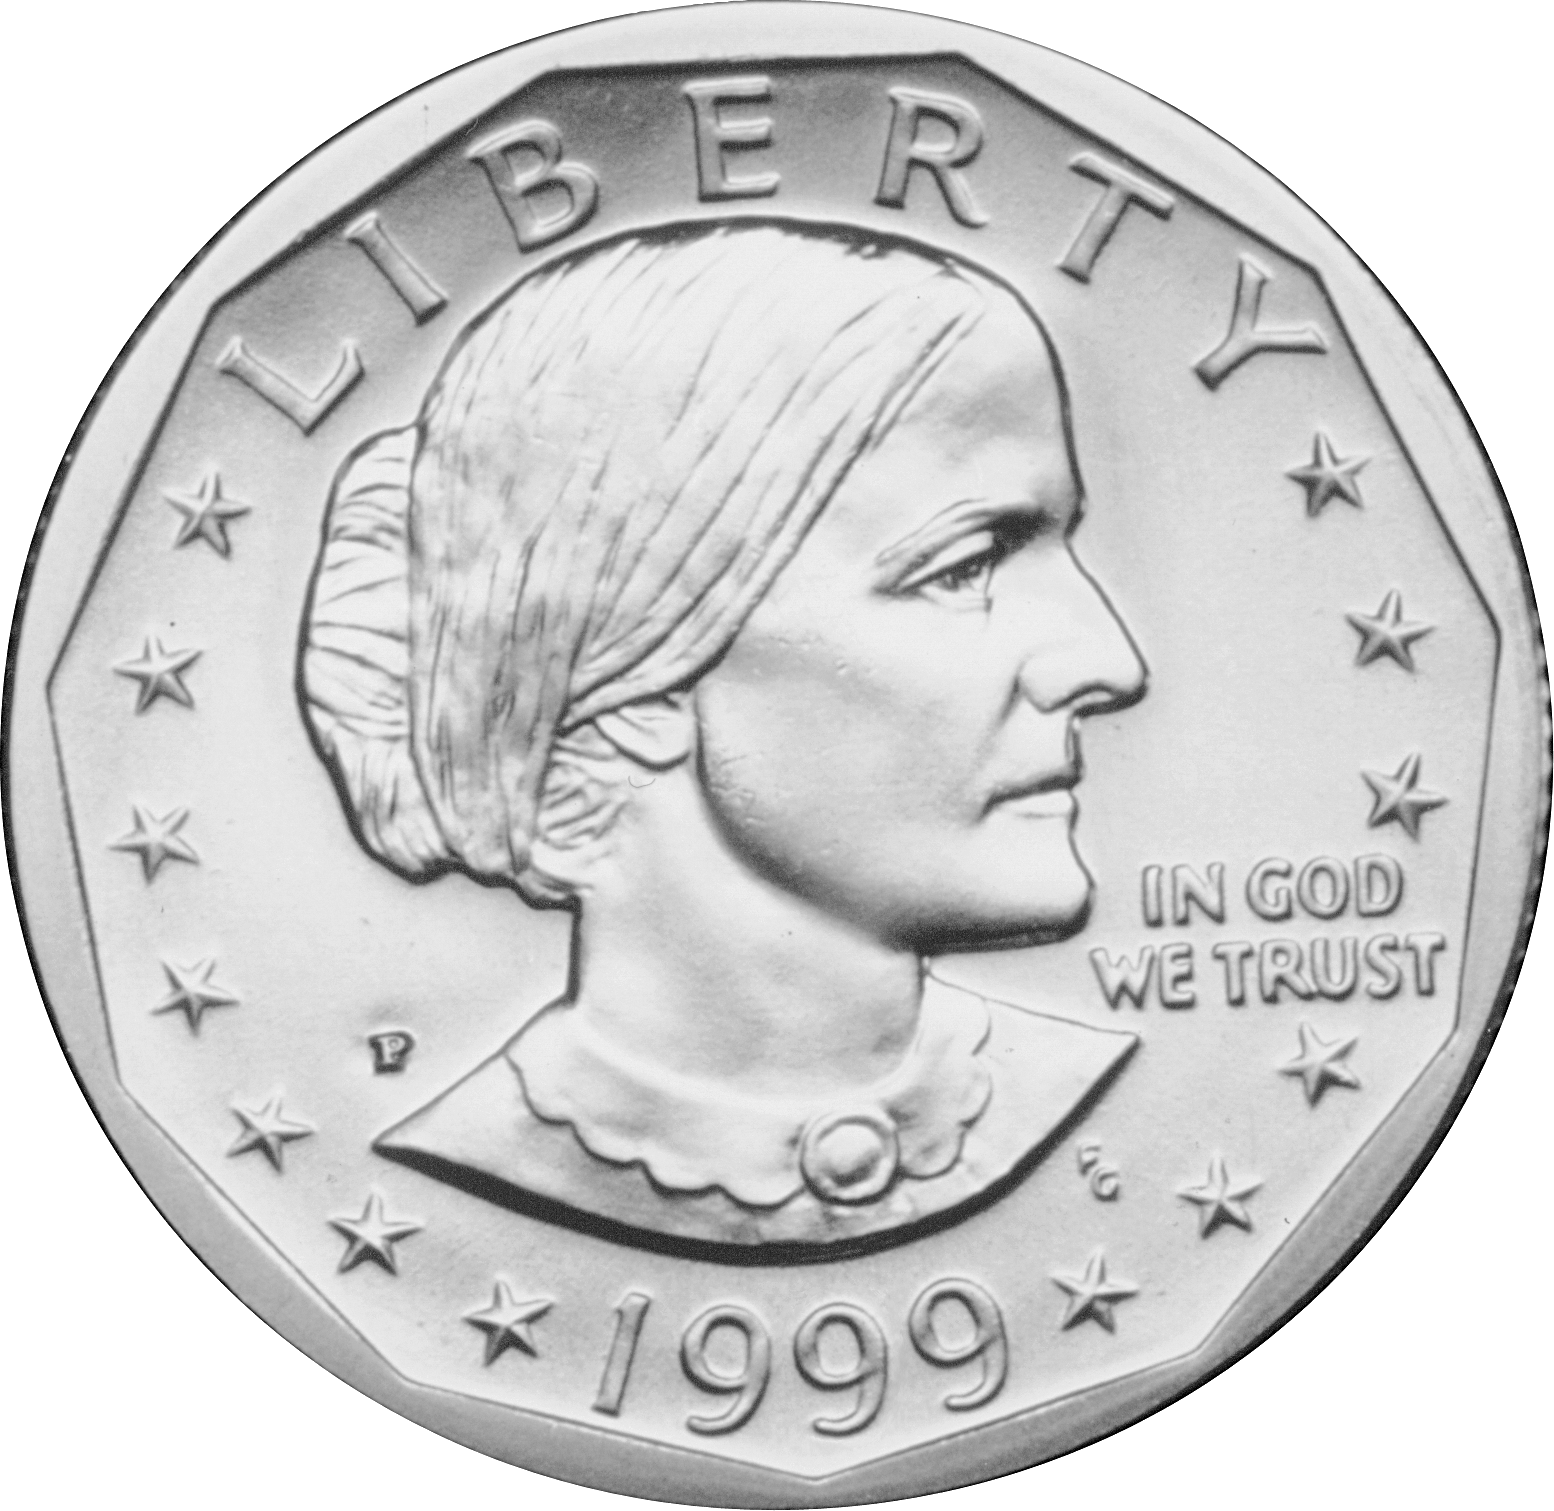 Coins clipart peso coin. Susan b anthony dollar